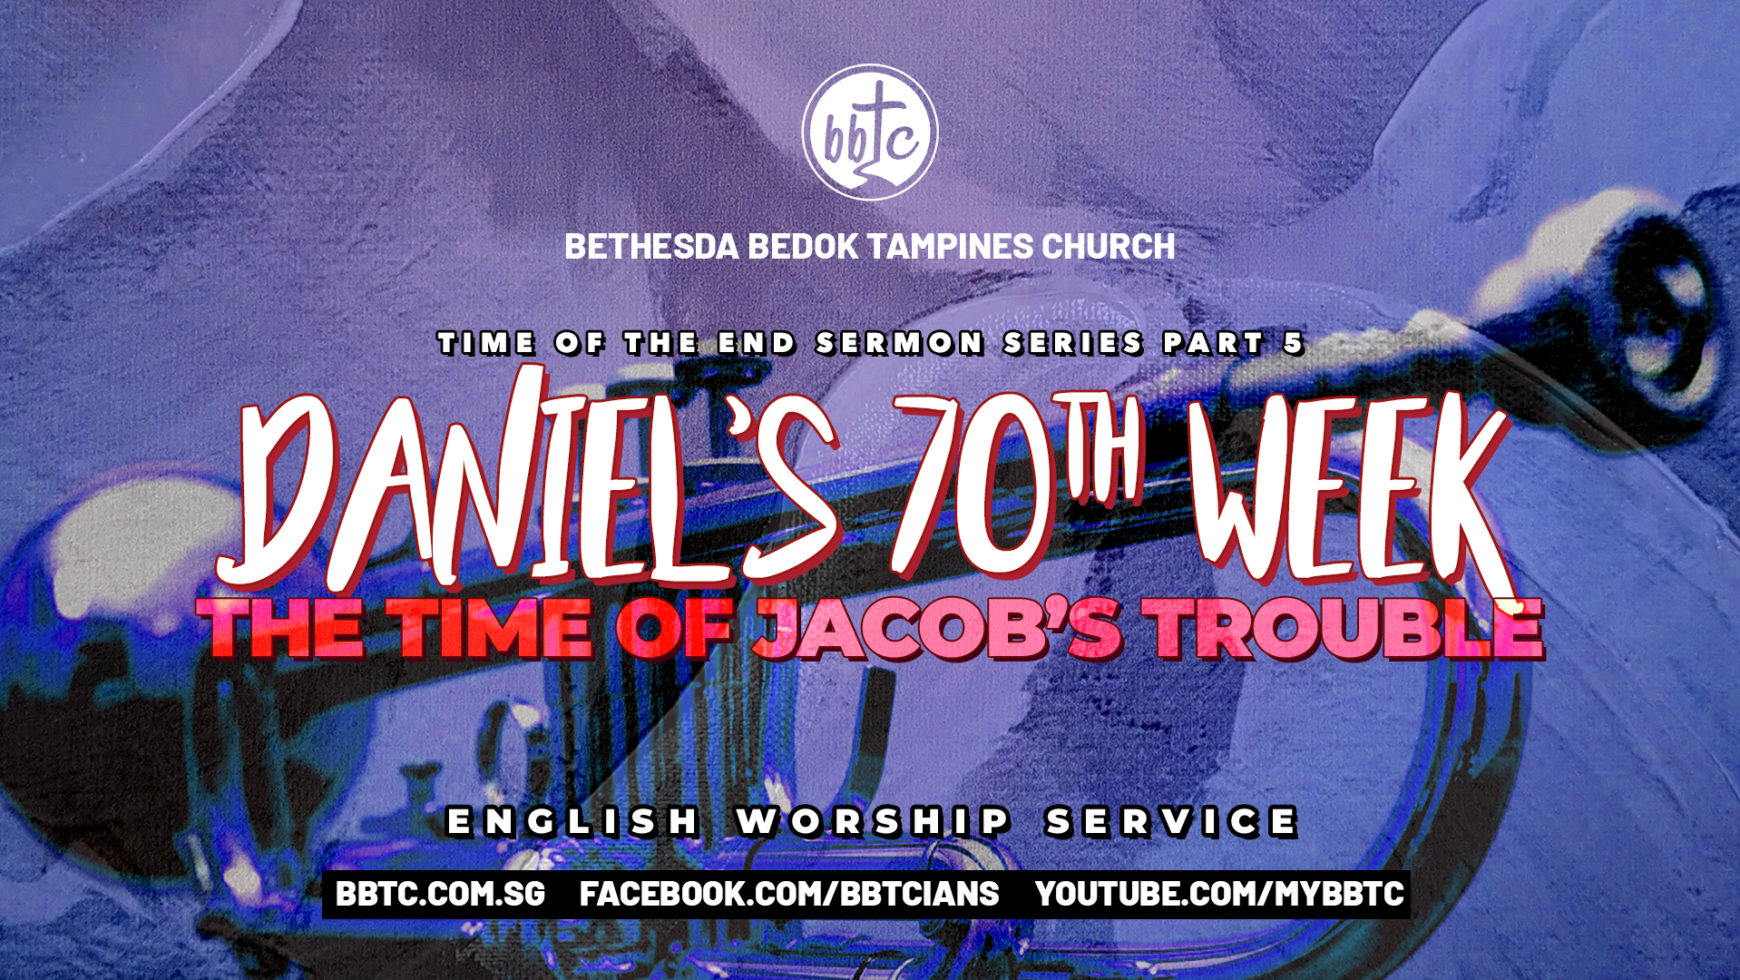 DANIEL'S 70TH WEEK – THE TIME OF JACOB'S TROUBLE